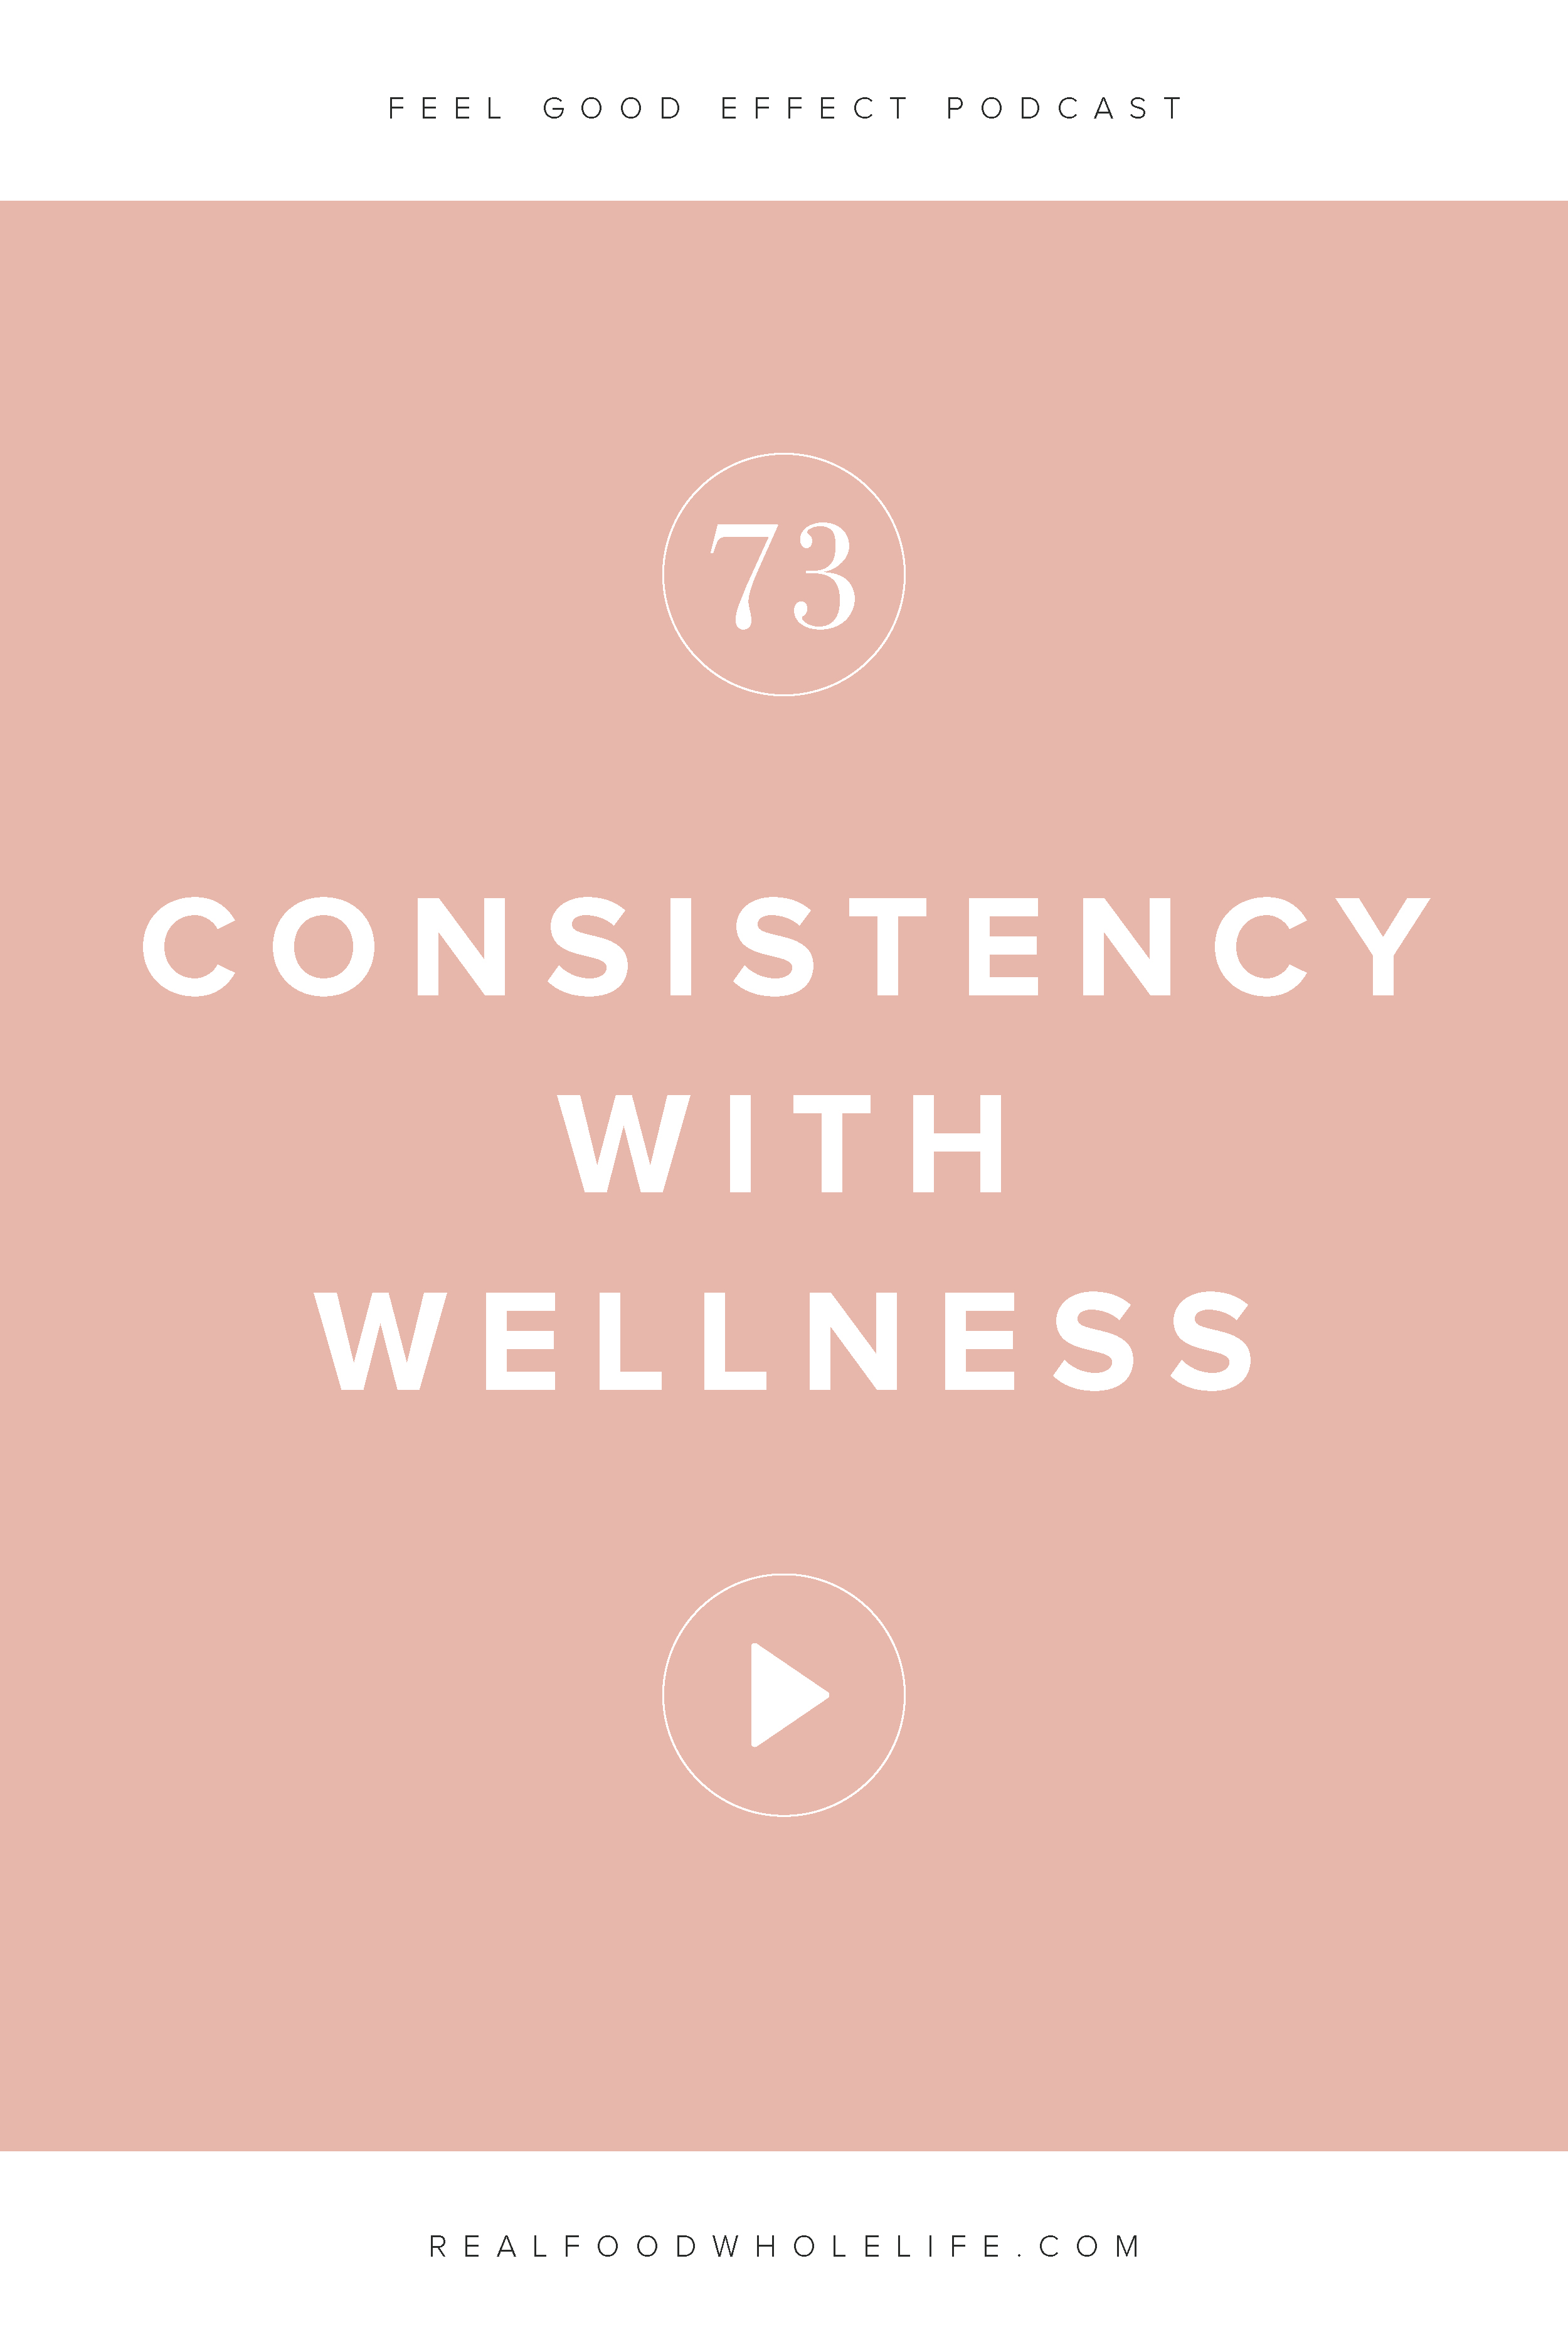 The Secret to Consistency with Wellness, and episode from the Feel Good Effect podcast. Listen for more on how to make your wellness goals sustainable. #realfoodwholelife #feelgoodeffect #healthy #wellnesspodcast #podcast #gentleisthenewperfect #resolution